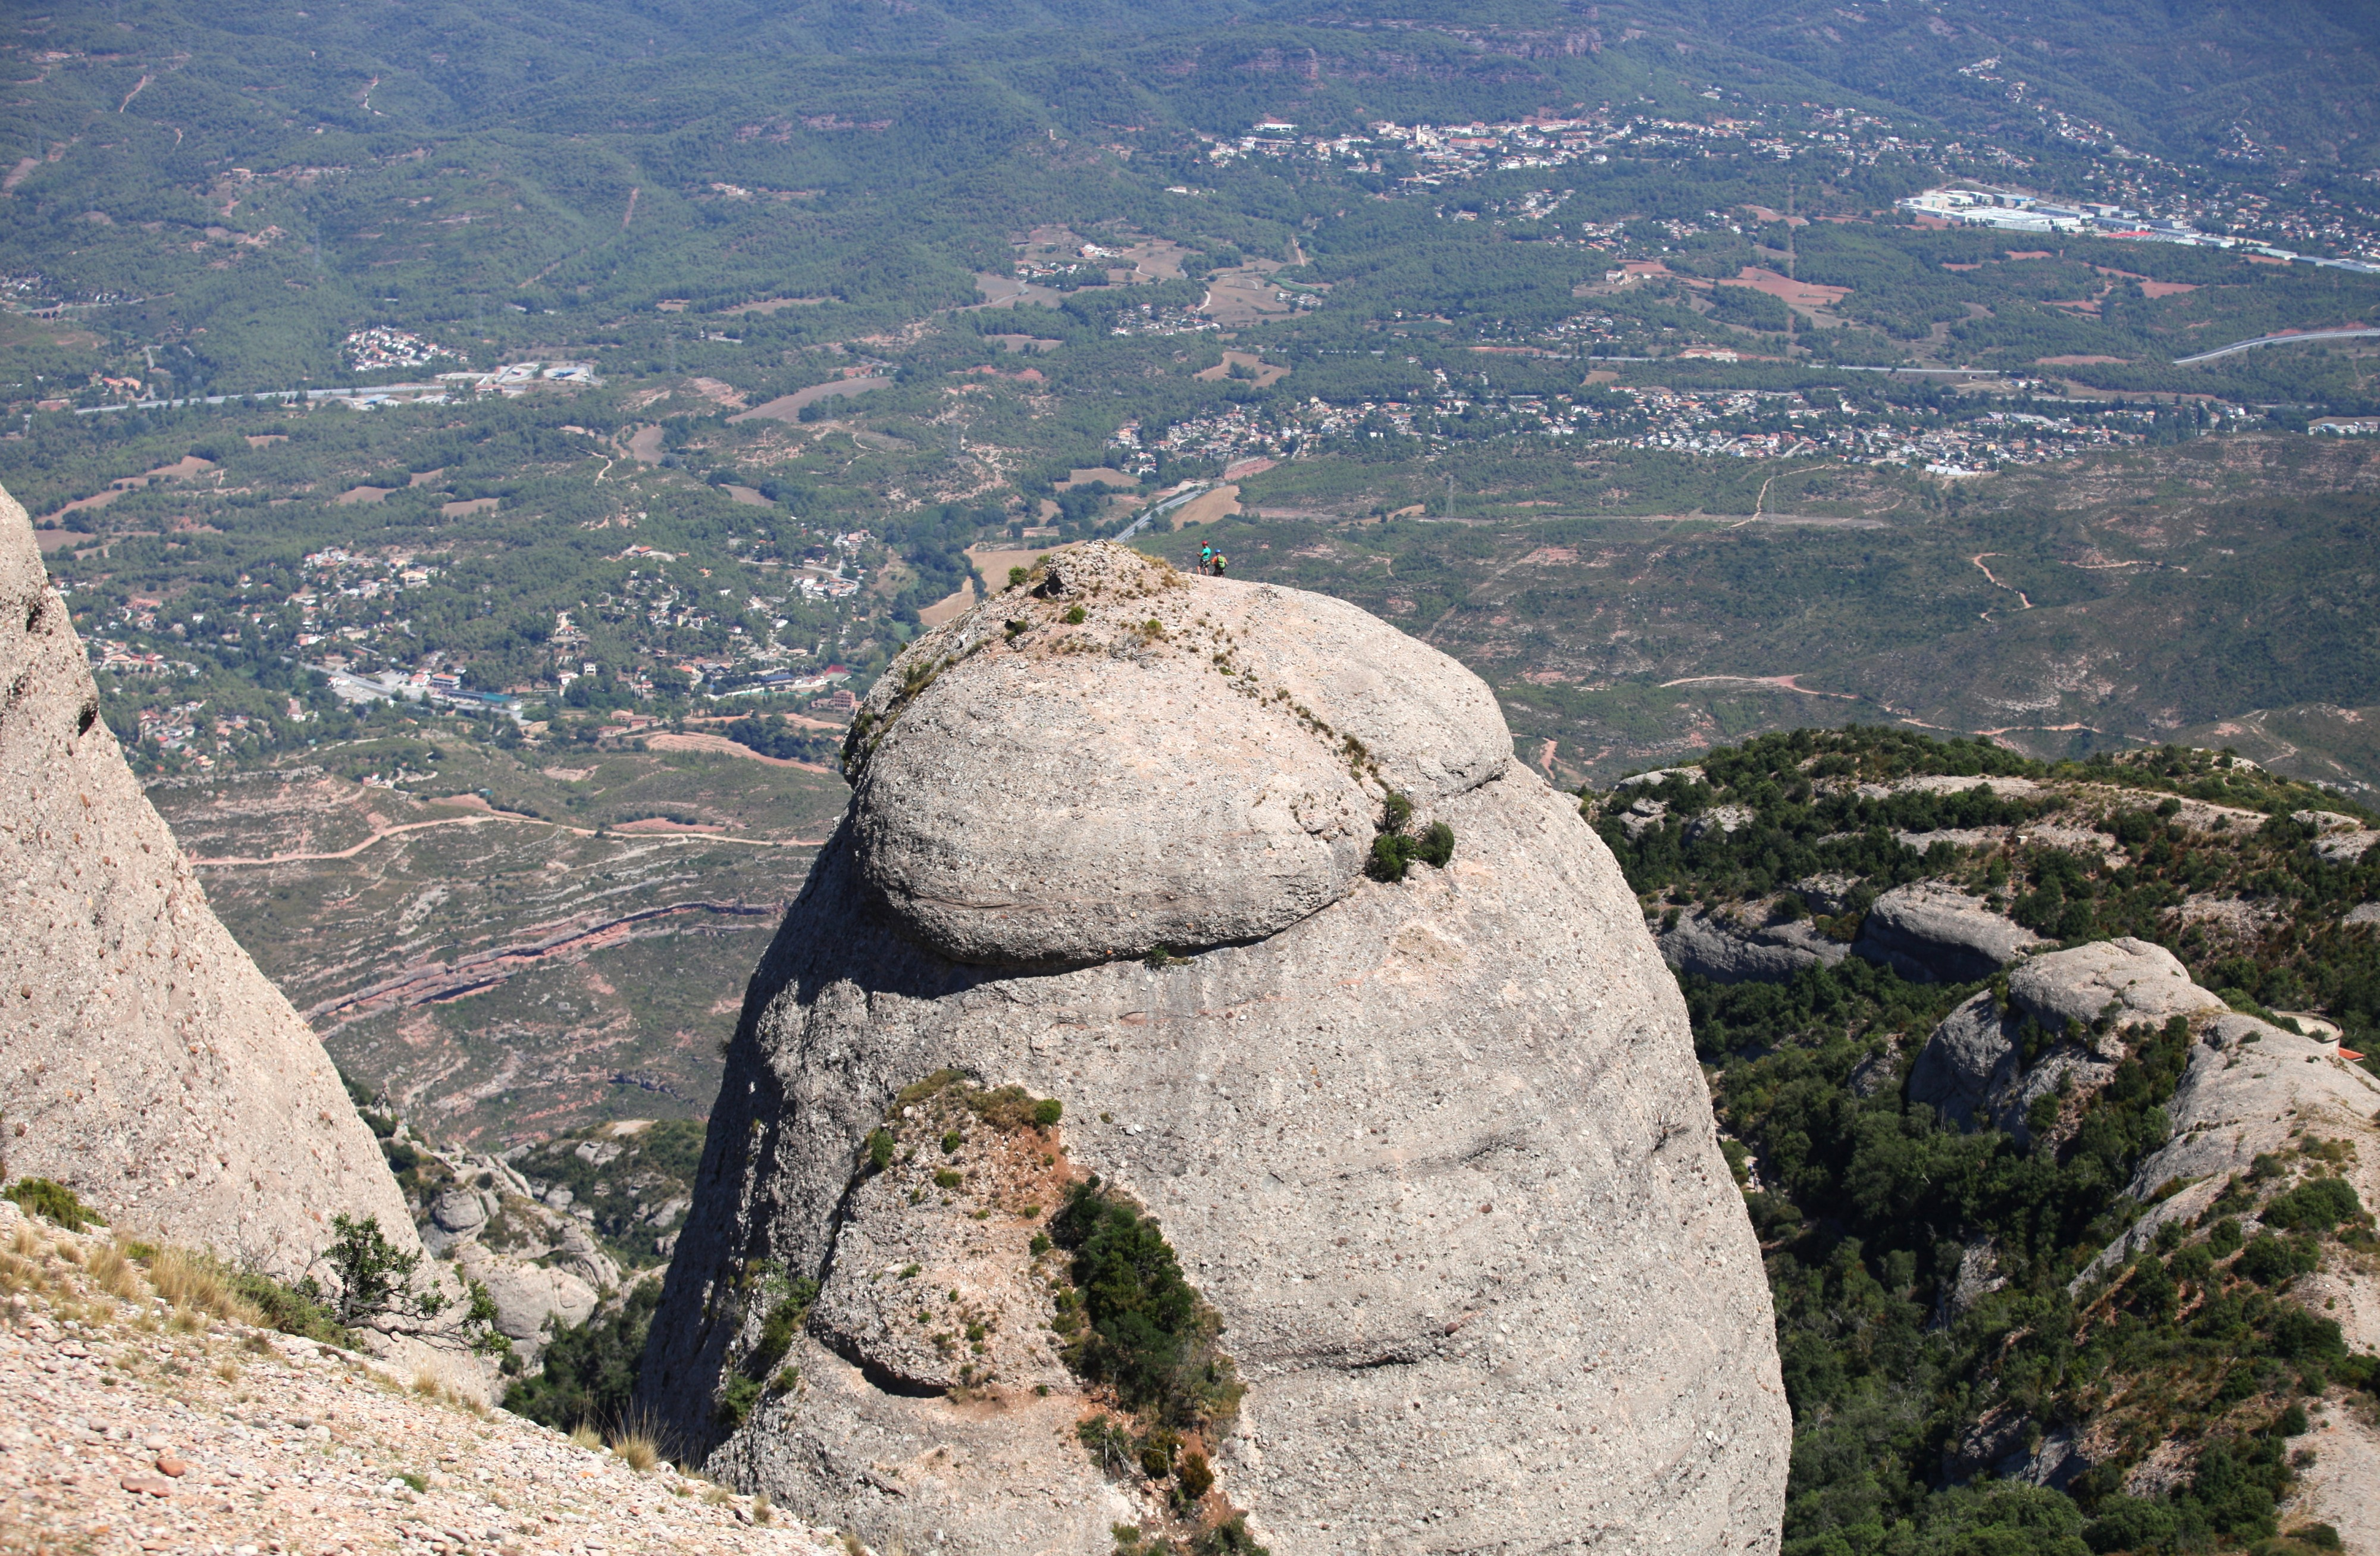 a view from Montserrat mountain, Catalonia, Spain, Europe, August 2013, picture 28